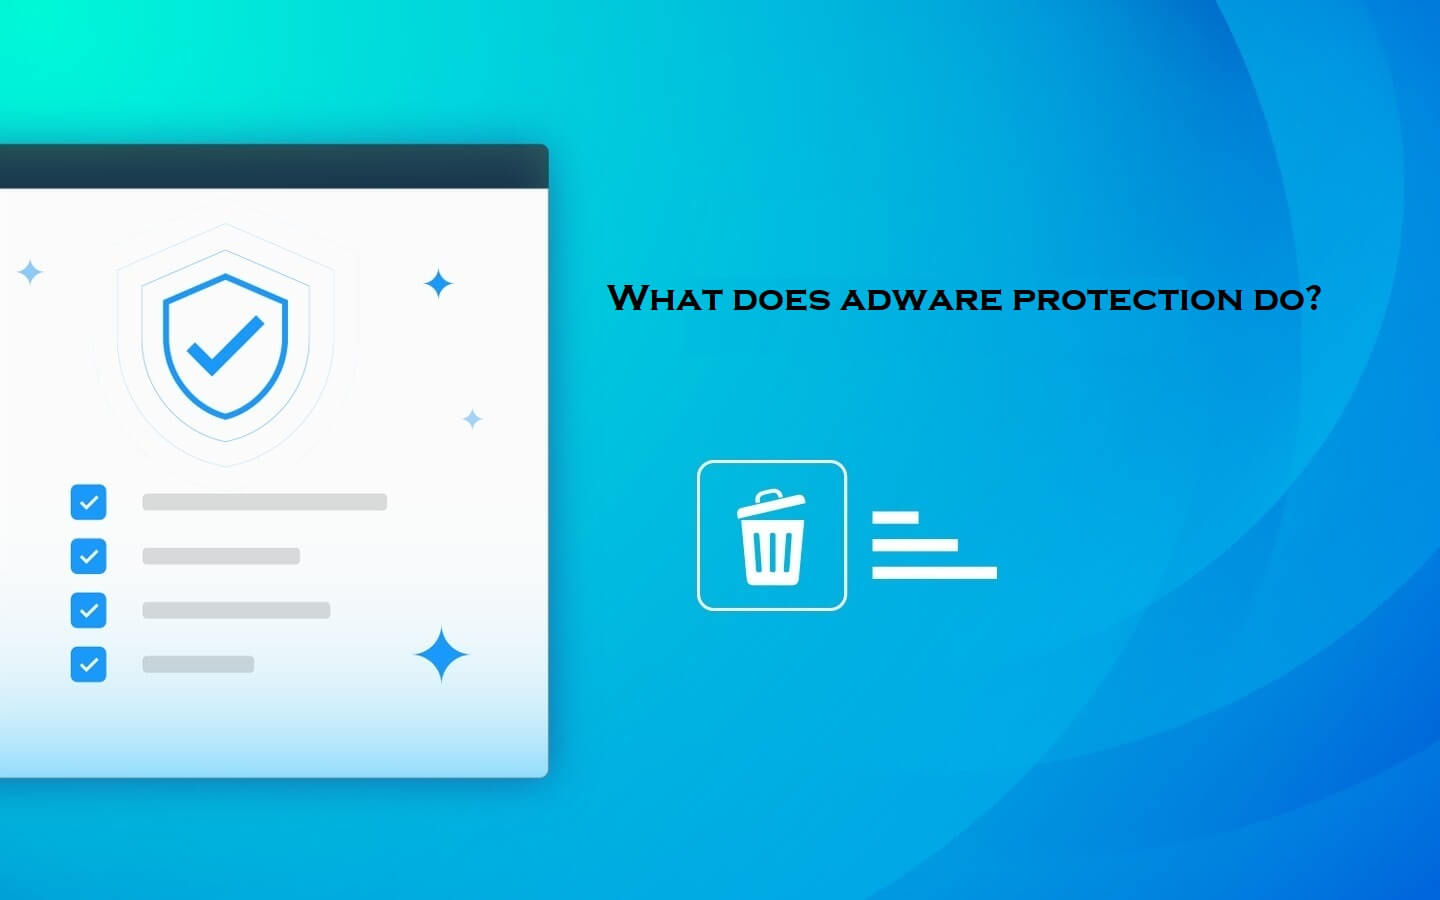 What does adware protection do?